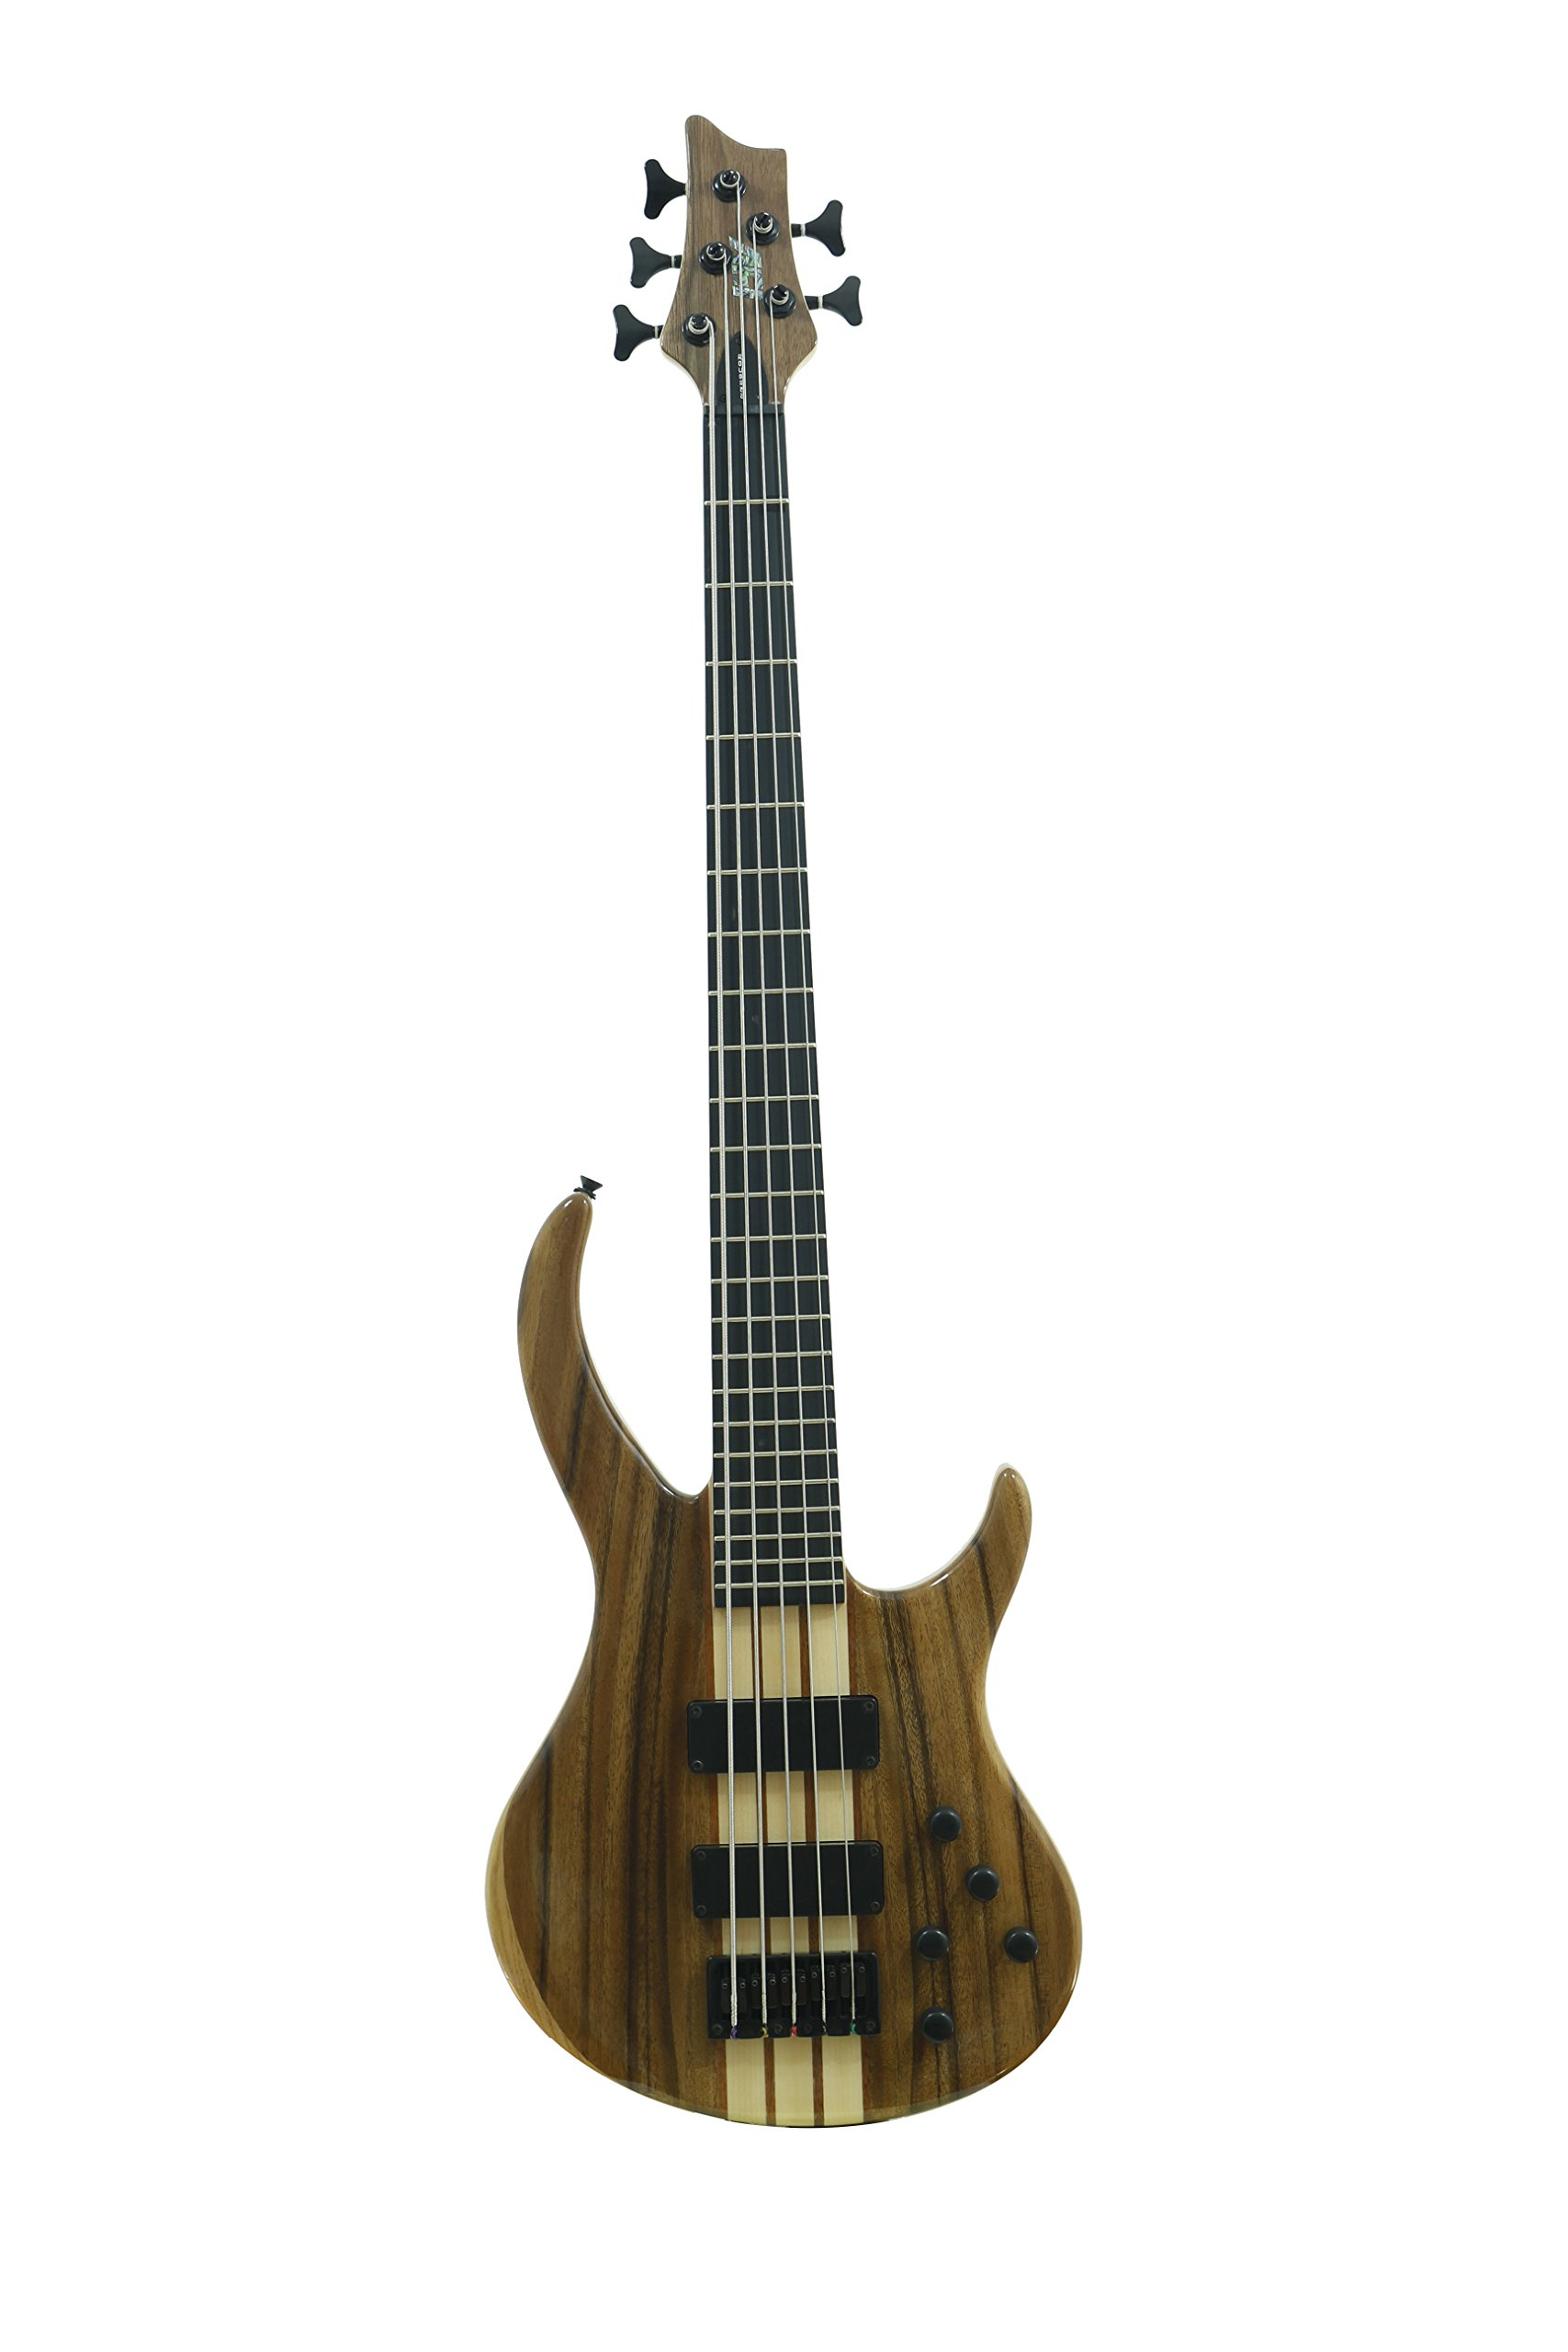 Cheap ivy IBW-500 Bass Solid-Body Electric Guitar Natural Black Friday & Cyber Monday 2019